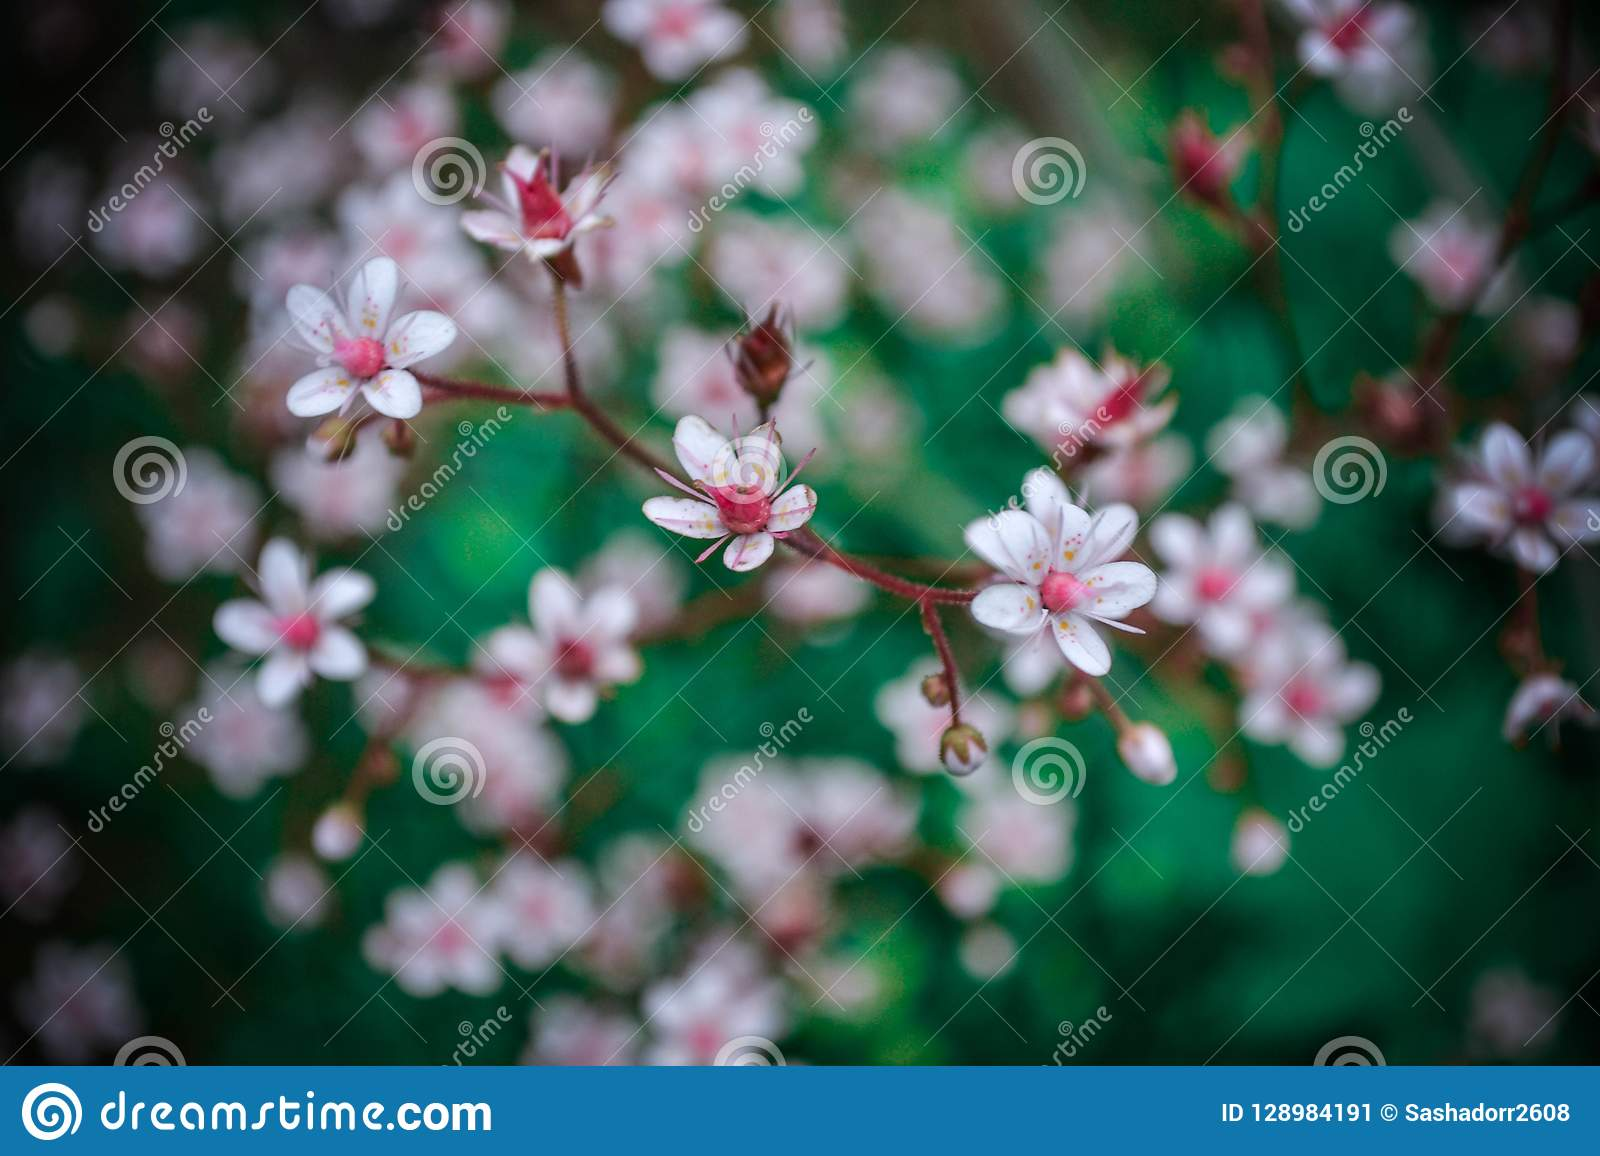 Soft cherry flowers in your hart